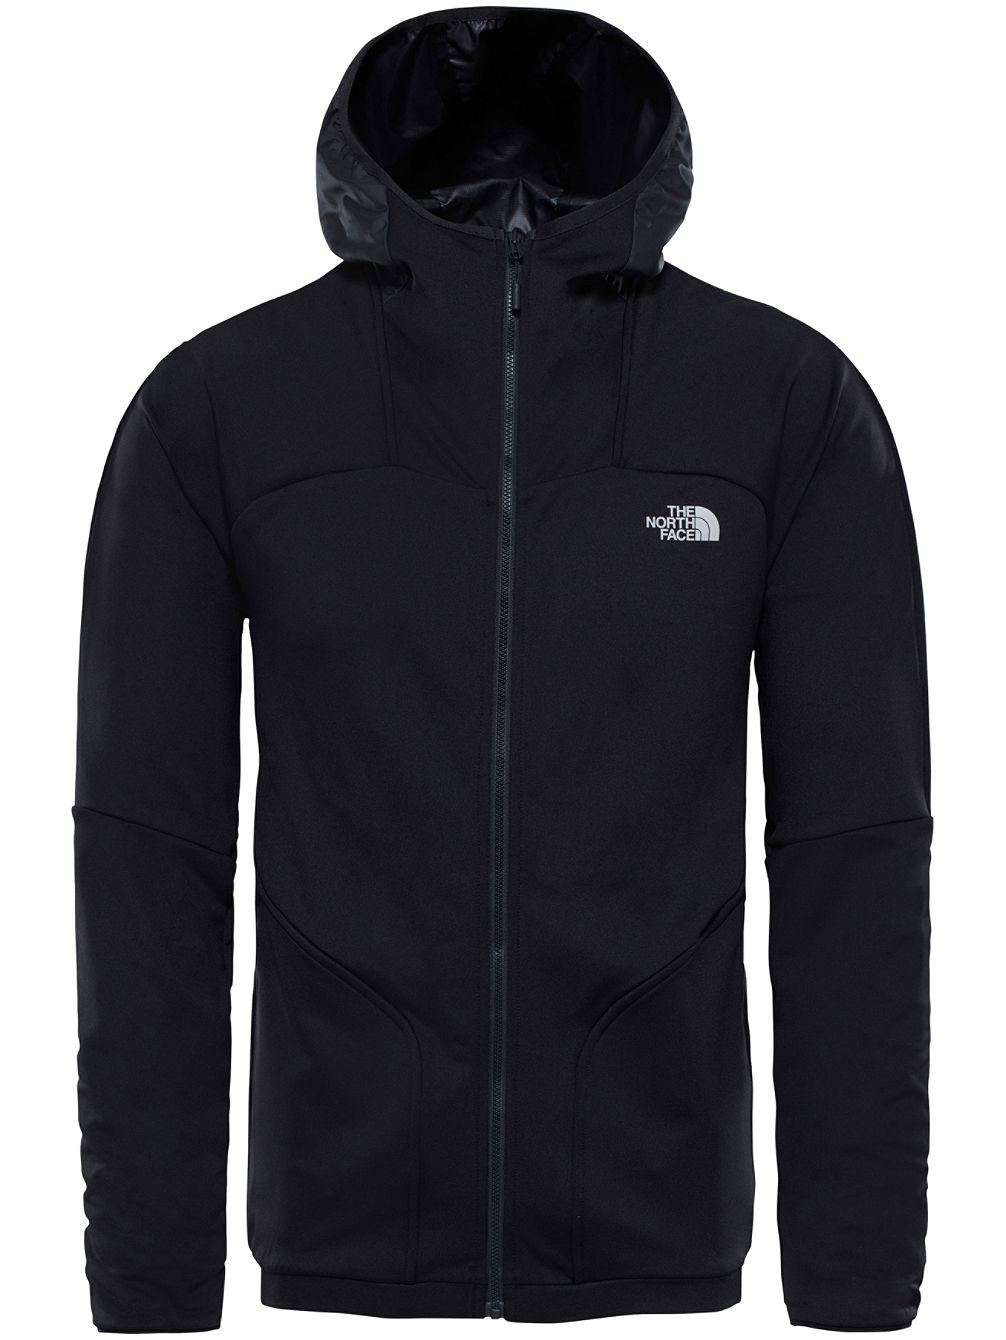 Purna Stretch Hooded Fleece Jacket